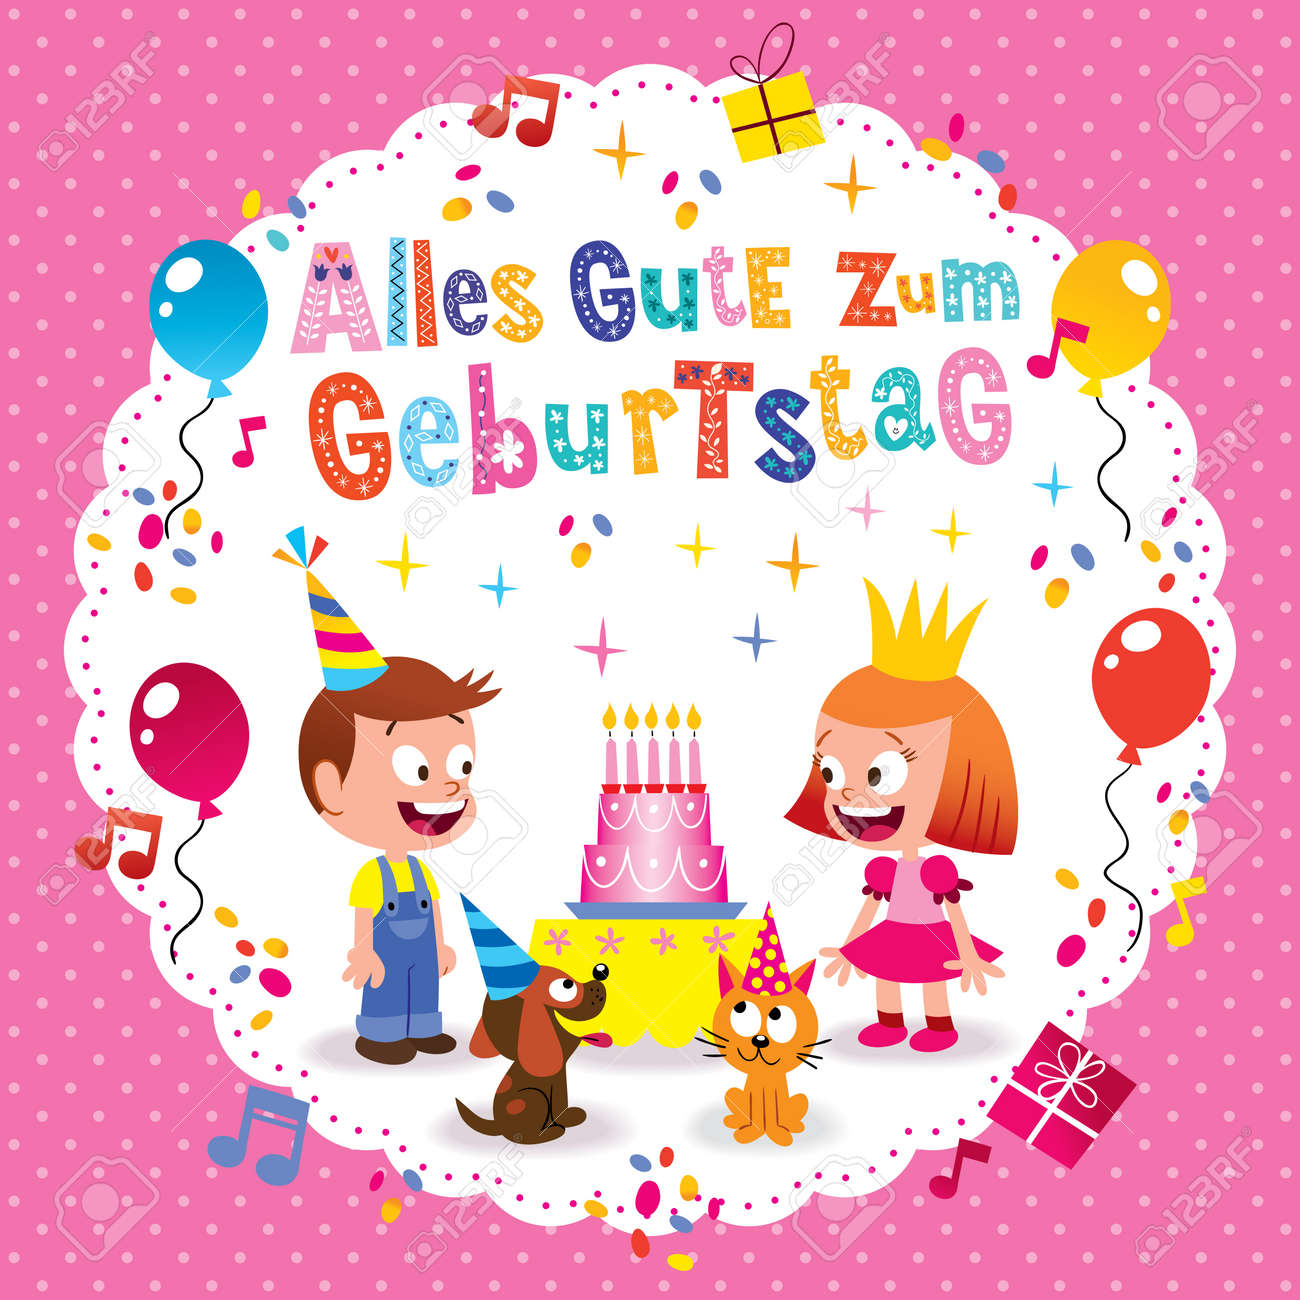 Alles Gute Zum Geburtstag Deutsch German Happy Birthday Greeting Card With Little Boy And Girl Puppy